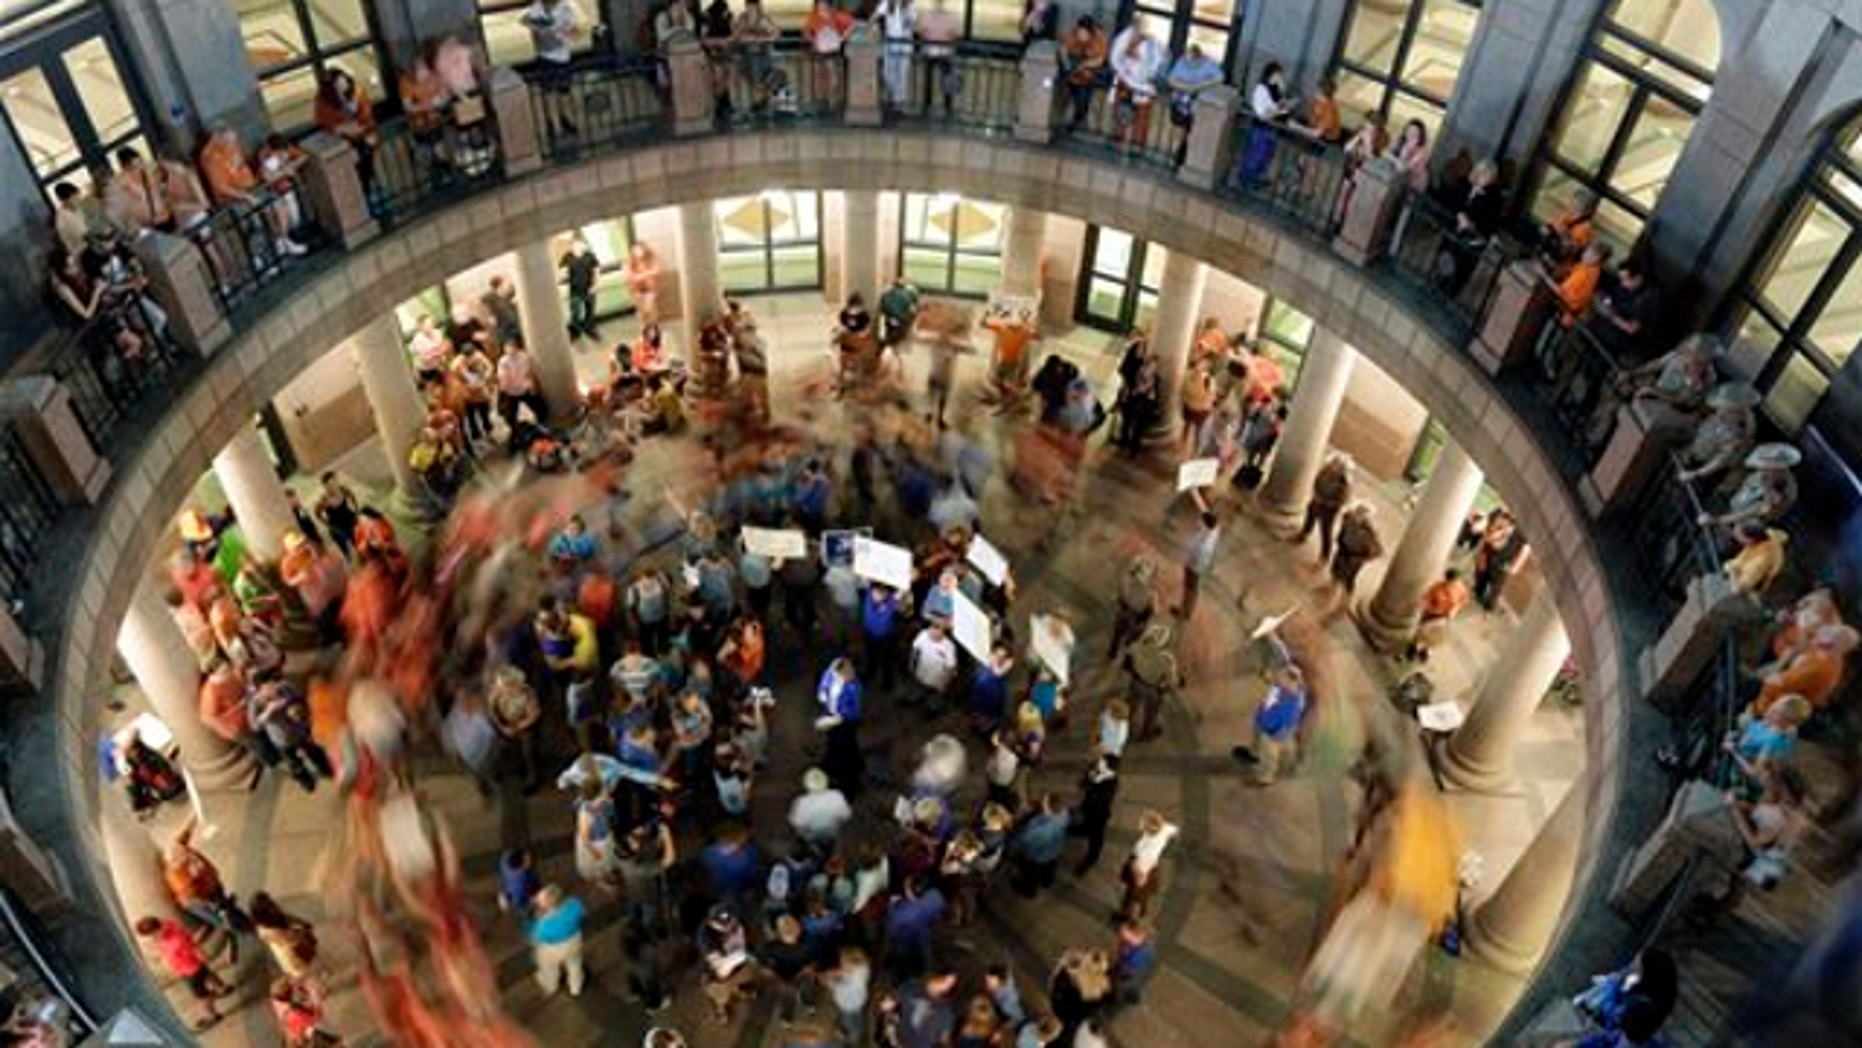 July 2, 2013: Opponents of an abortion bill walk in circles around supporters of the bill as a committee holds hearings on the bill near by at the Texas state capitol in Austin, Texas.